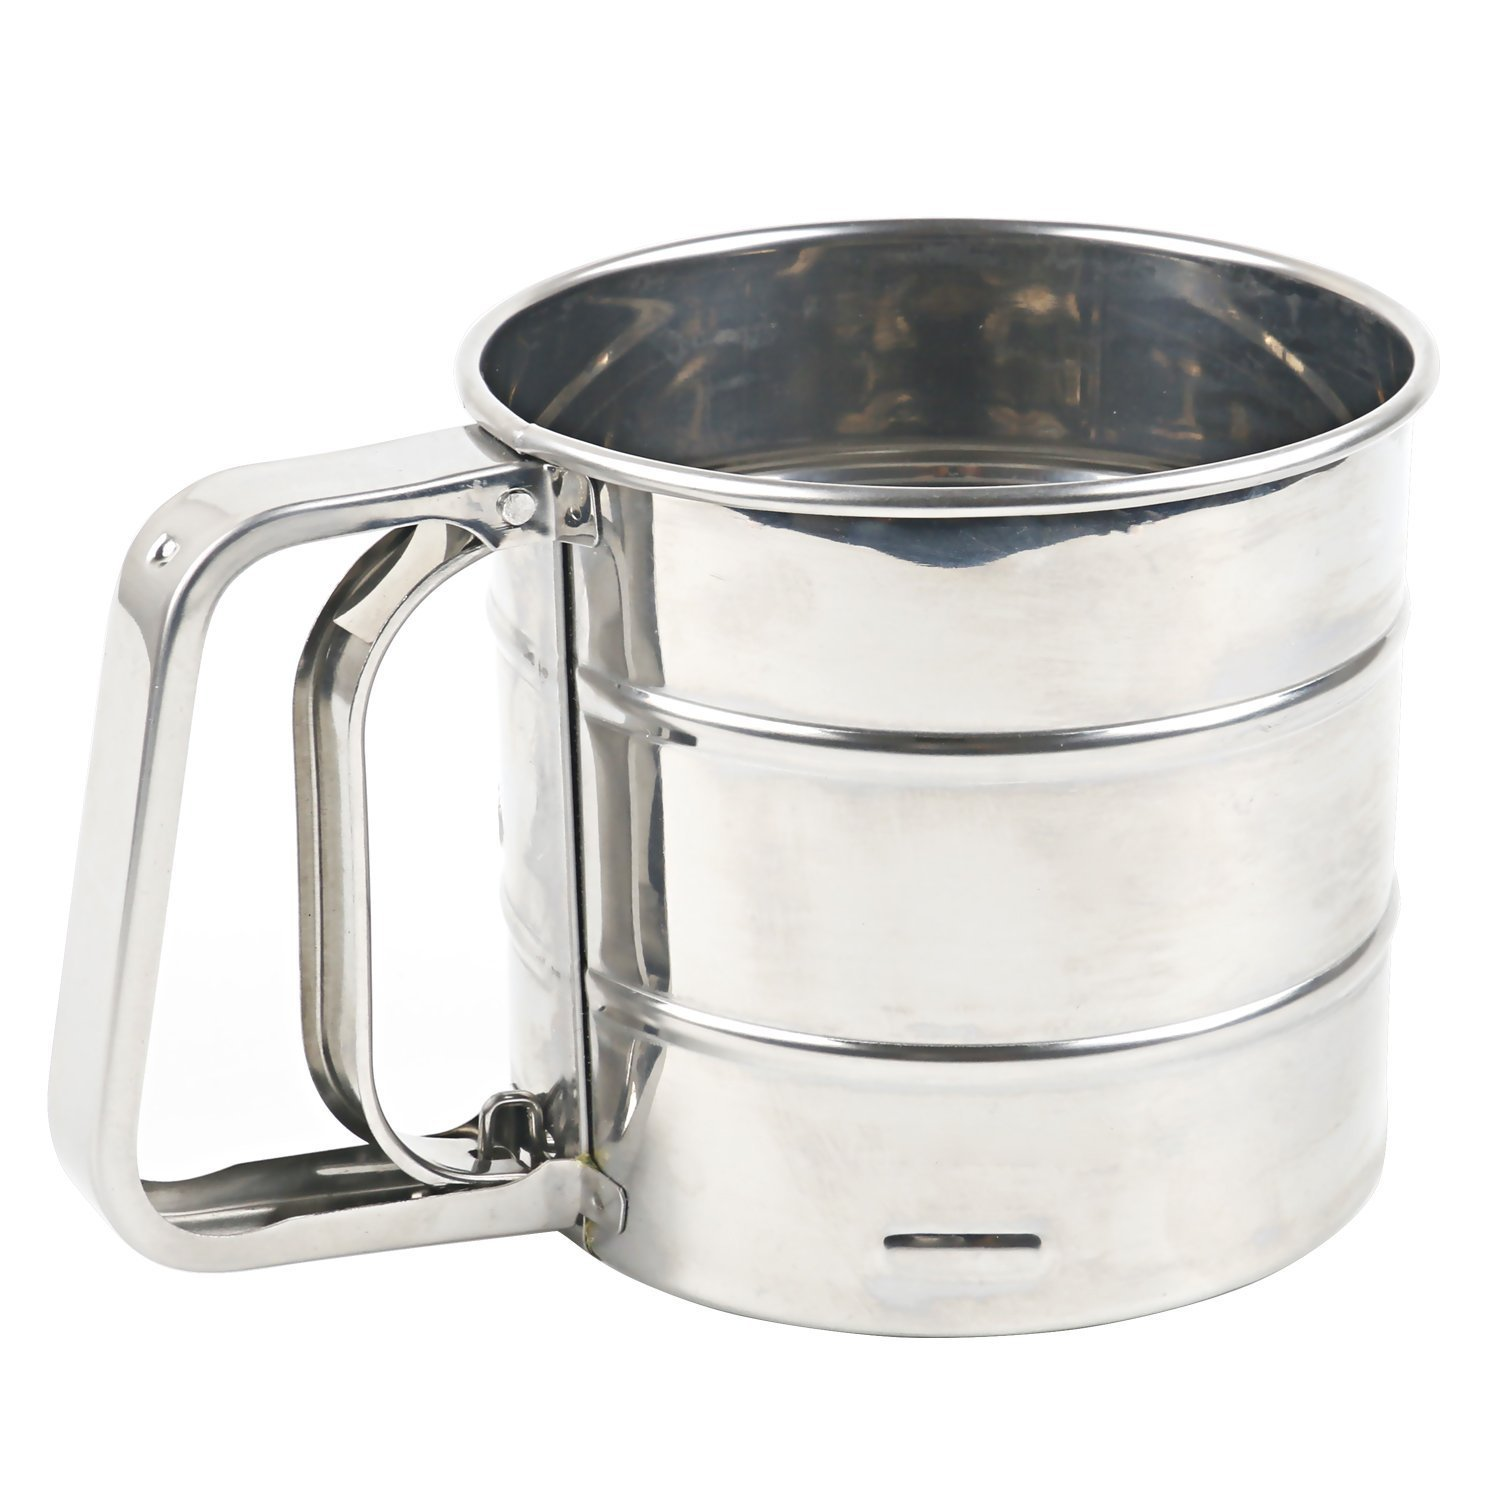 Stainless Steel Flour Sifter for Baking,Flour Sifter with Crank Dishwasher Safe (Small) Baking House BH233